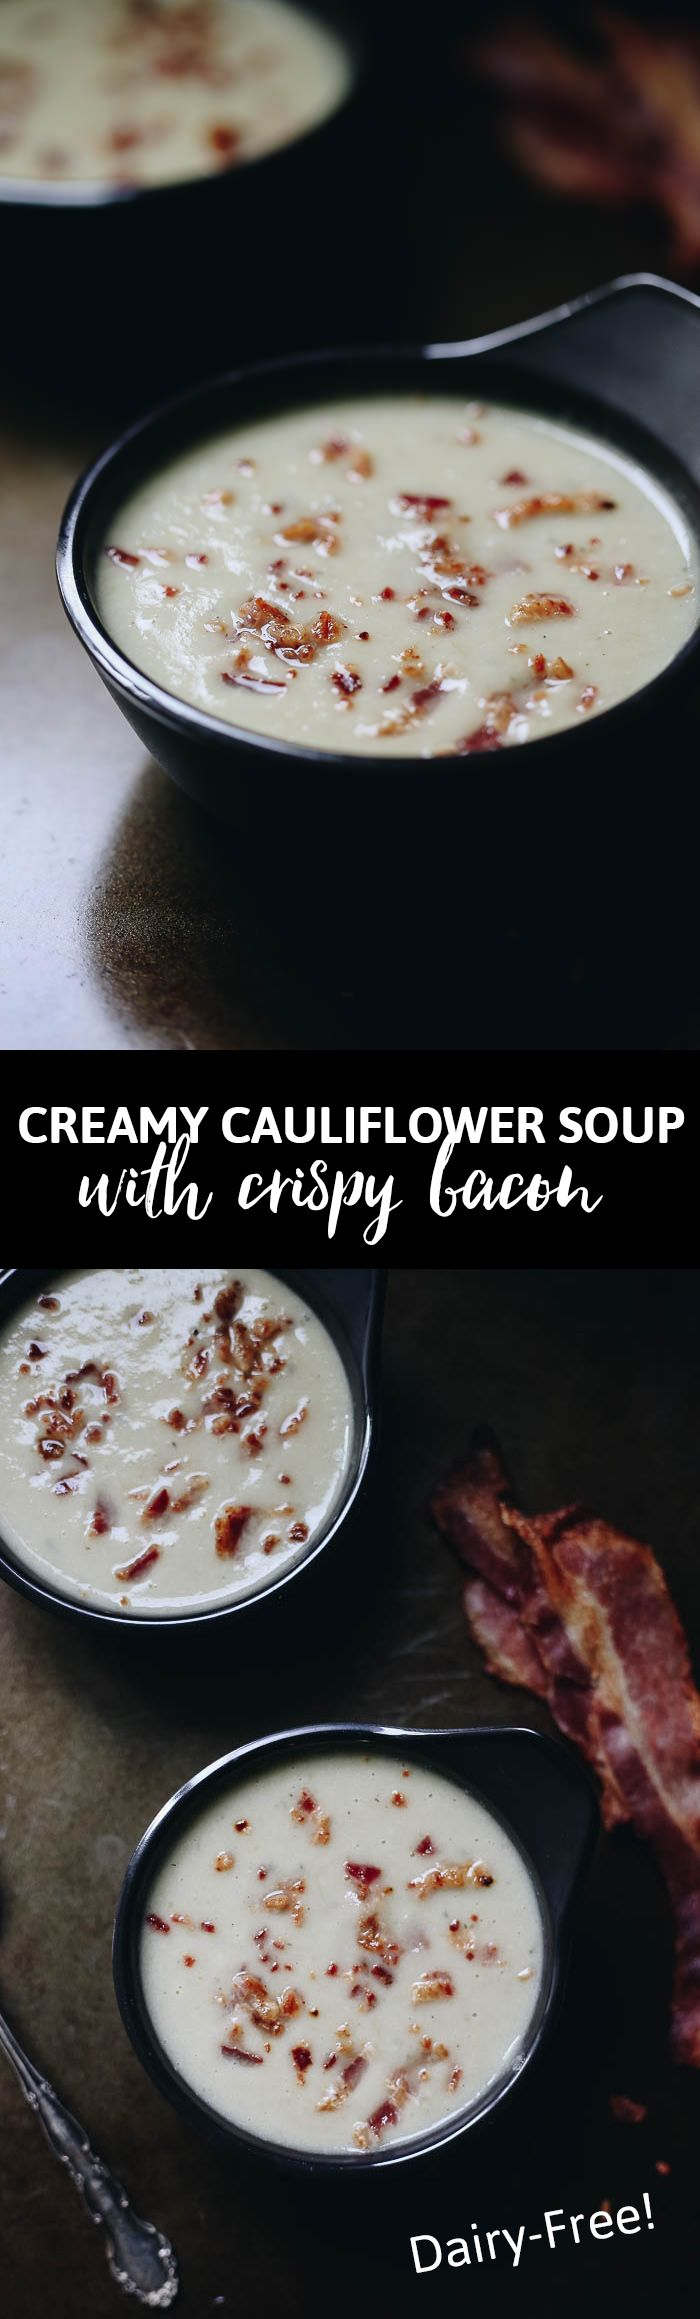 This Creamy Cauliflower Soup with Crispy Bacon is comfort food at its finest. But we've ditched the cream for the smooth sweetness of coconut milk, which pairs perfectly with the crunchy bacon bits sprinkled on top. This is not your average soup recipe!